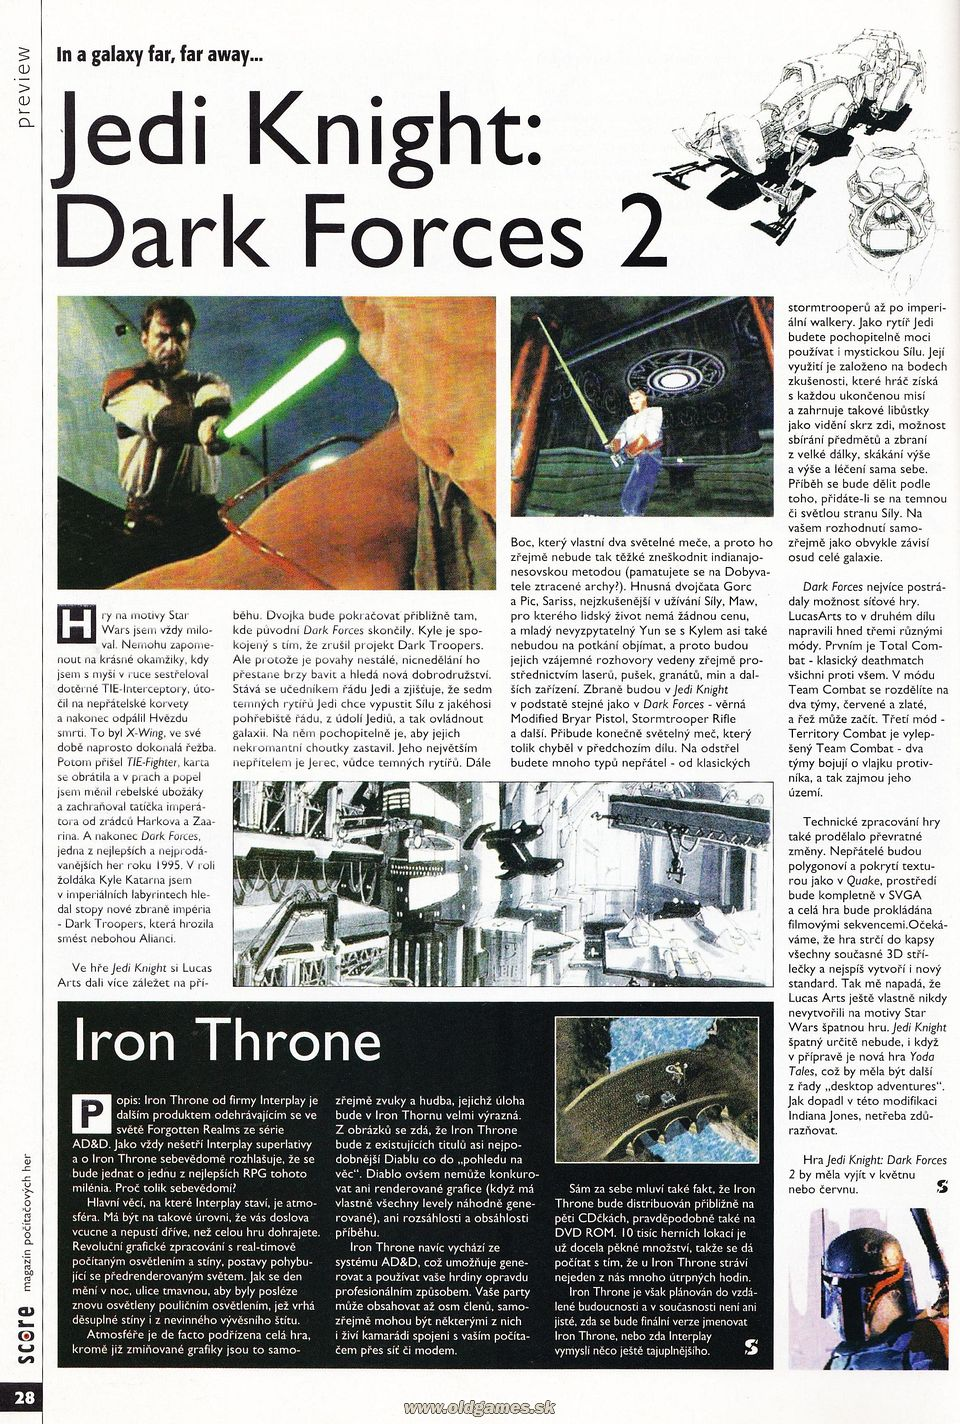 Preview: Jedi Knight: Dark Forces 2